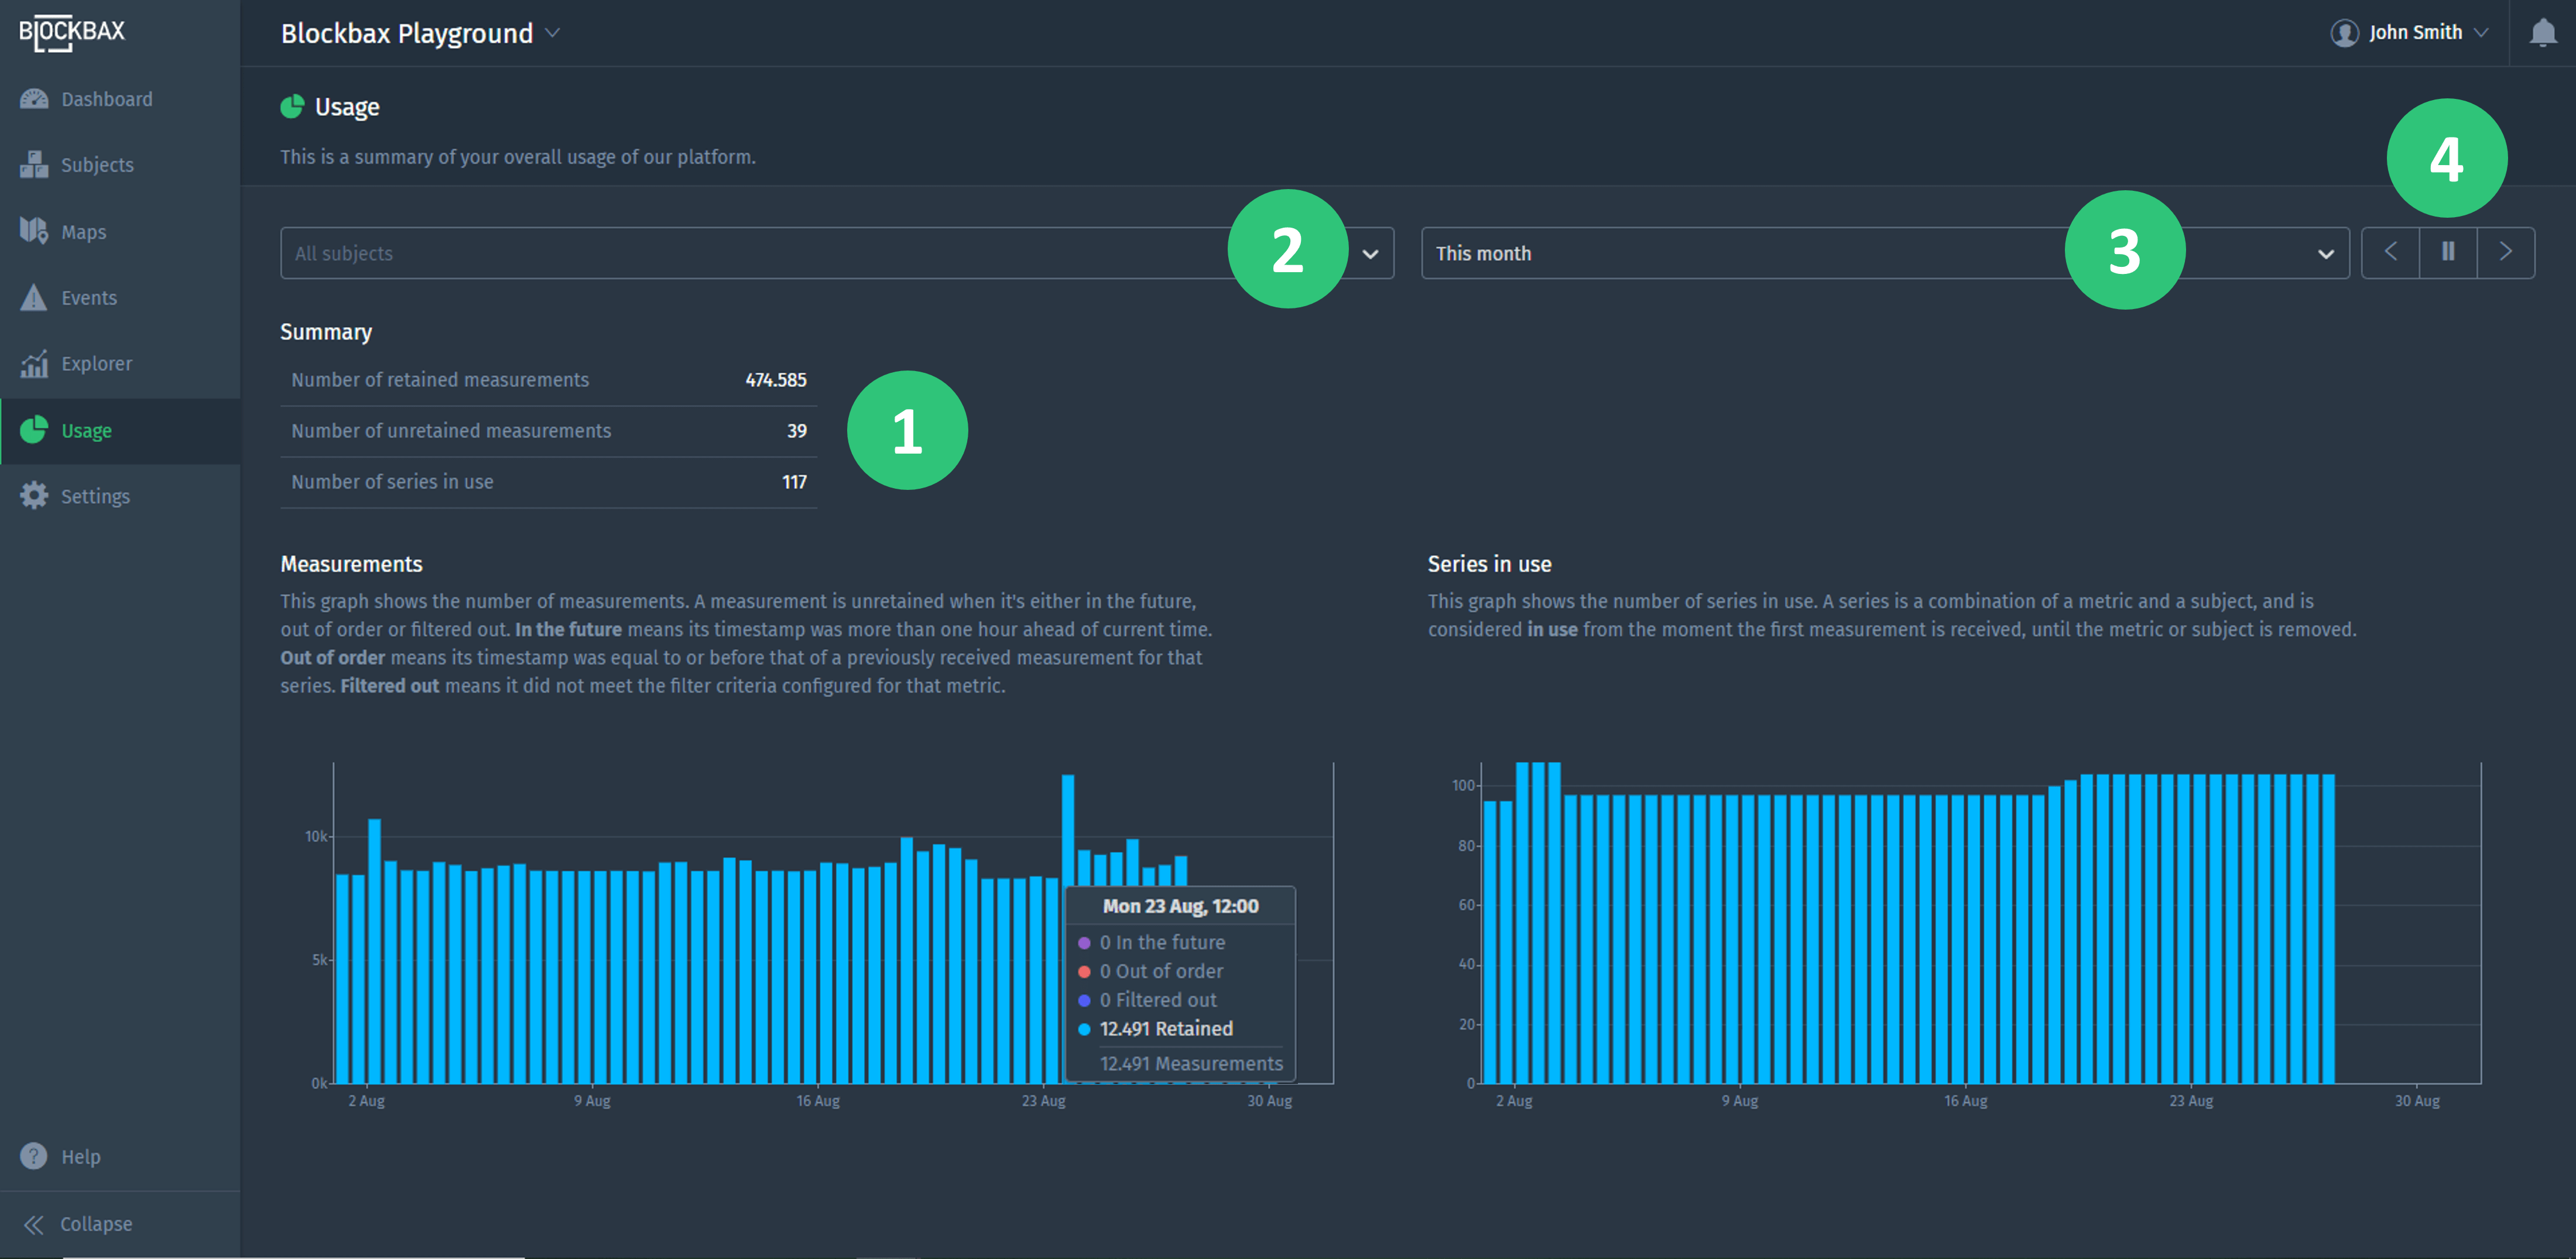 Usage overview